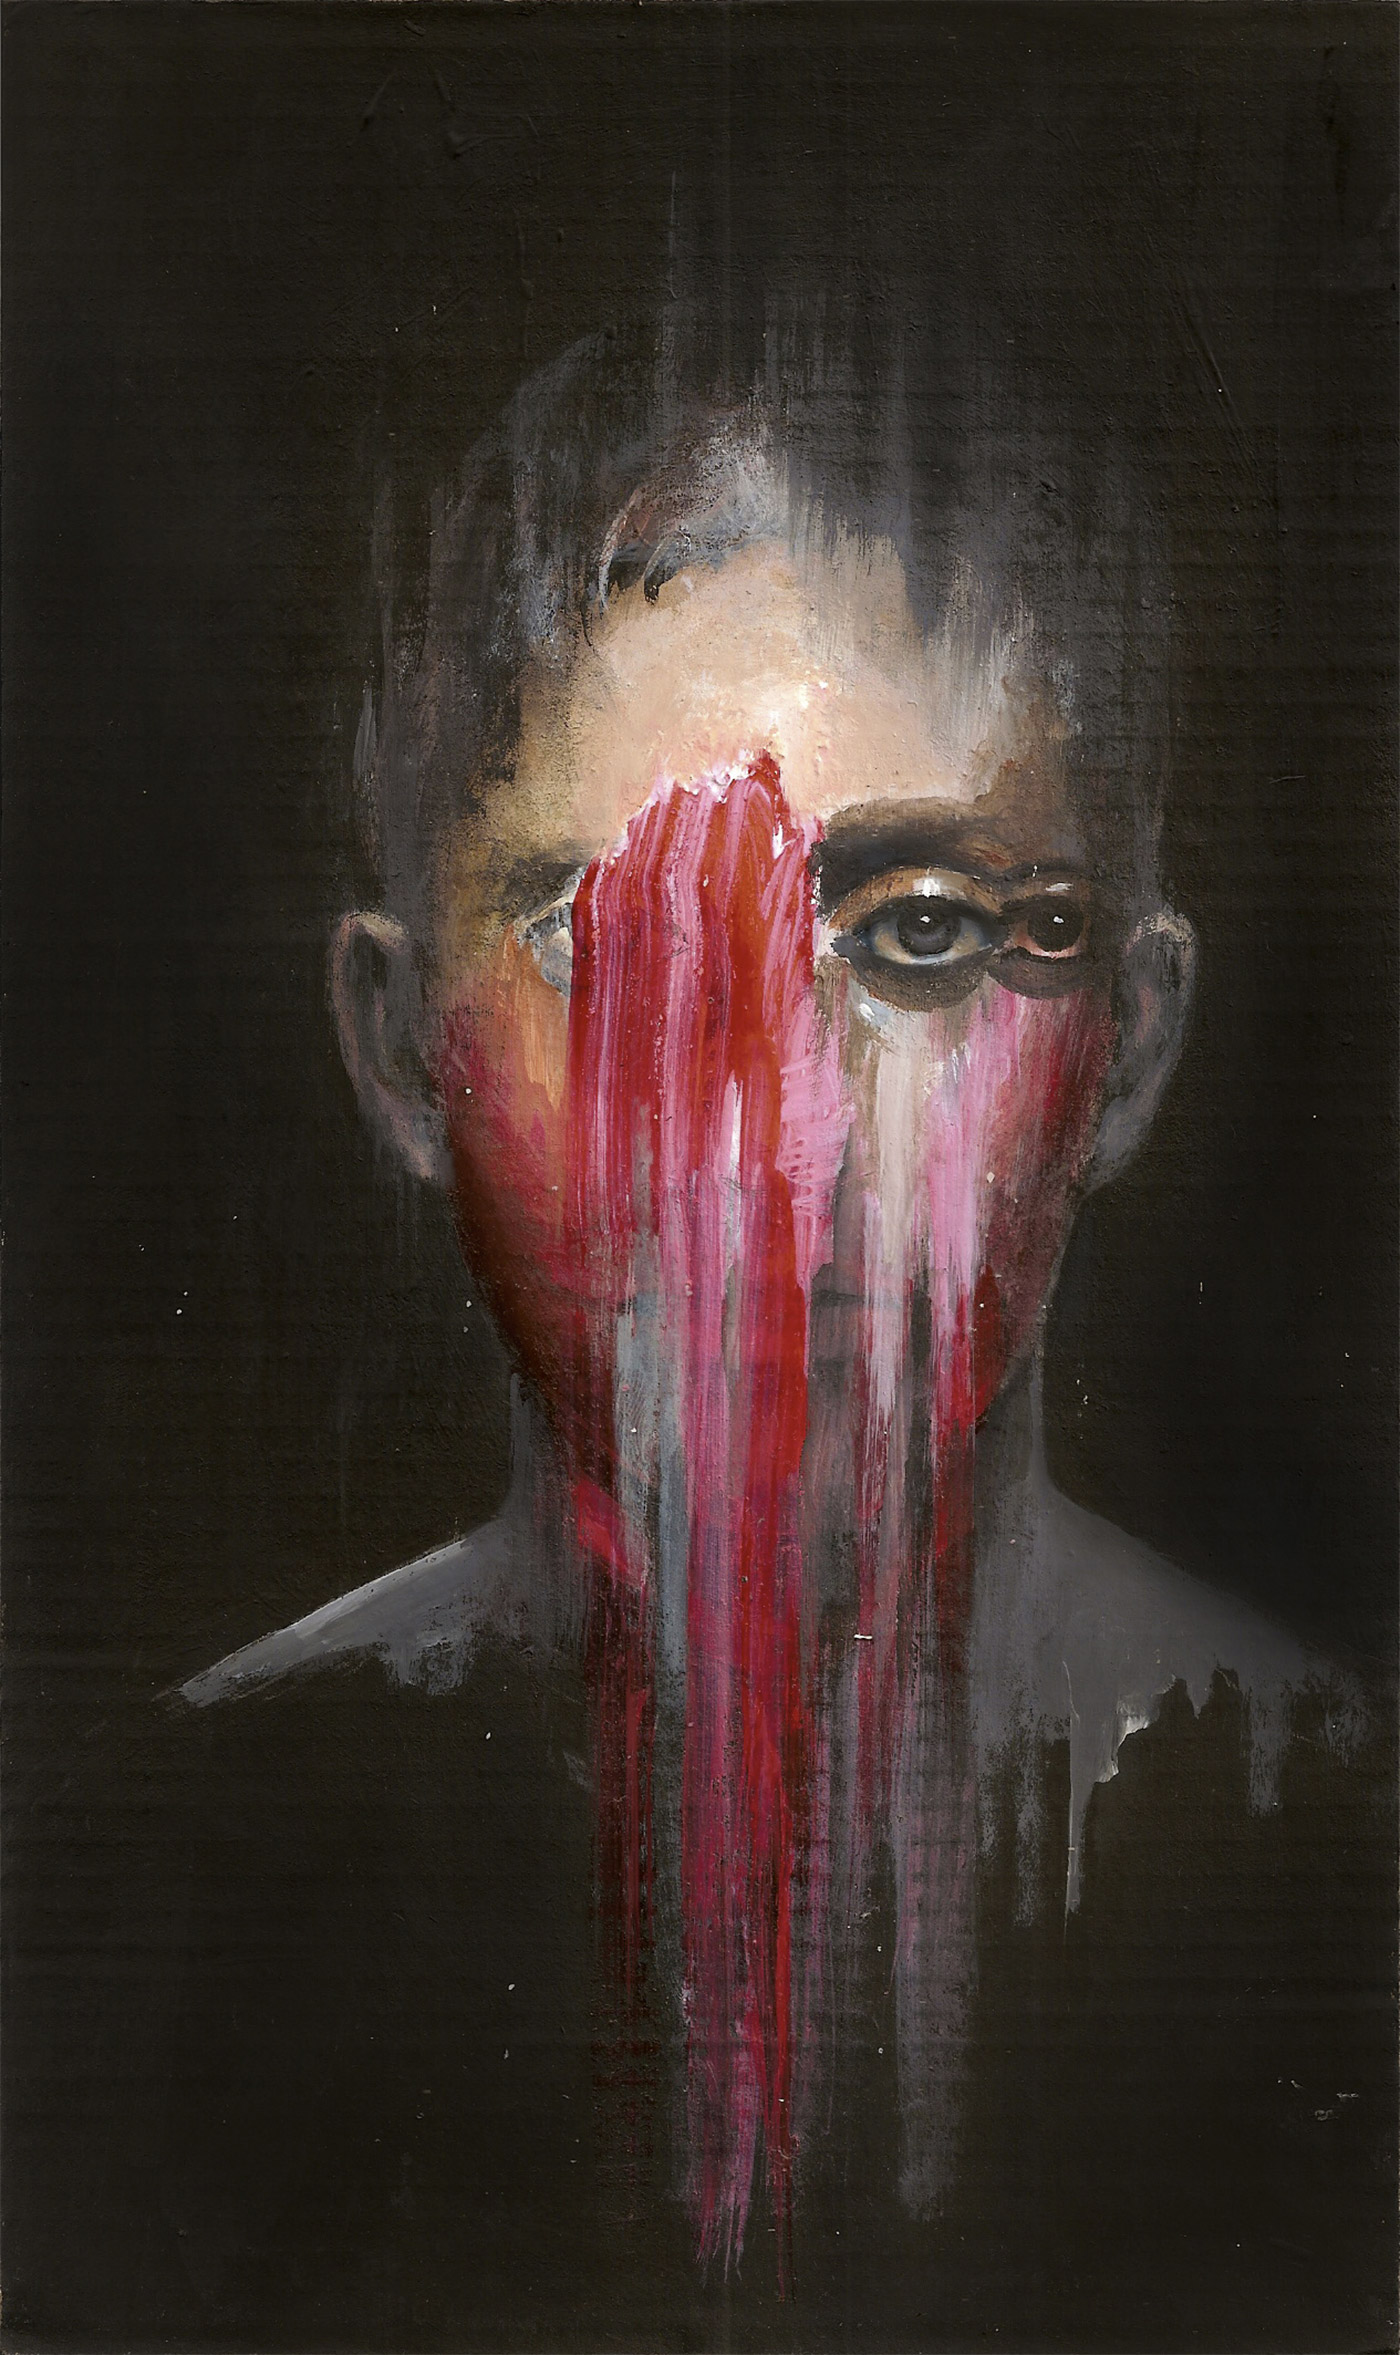 Fading Figures Expressive Paintings By Nima Tayebian